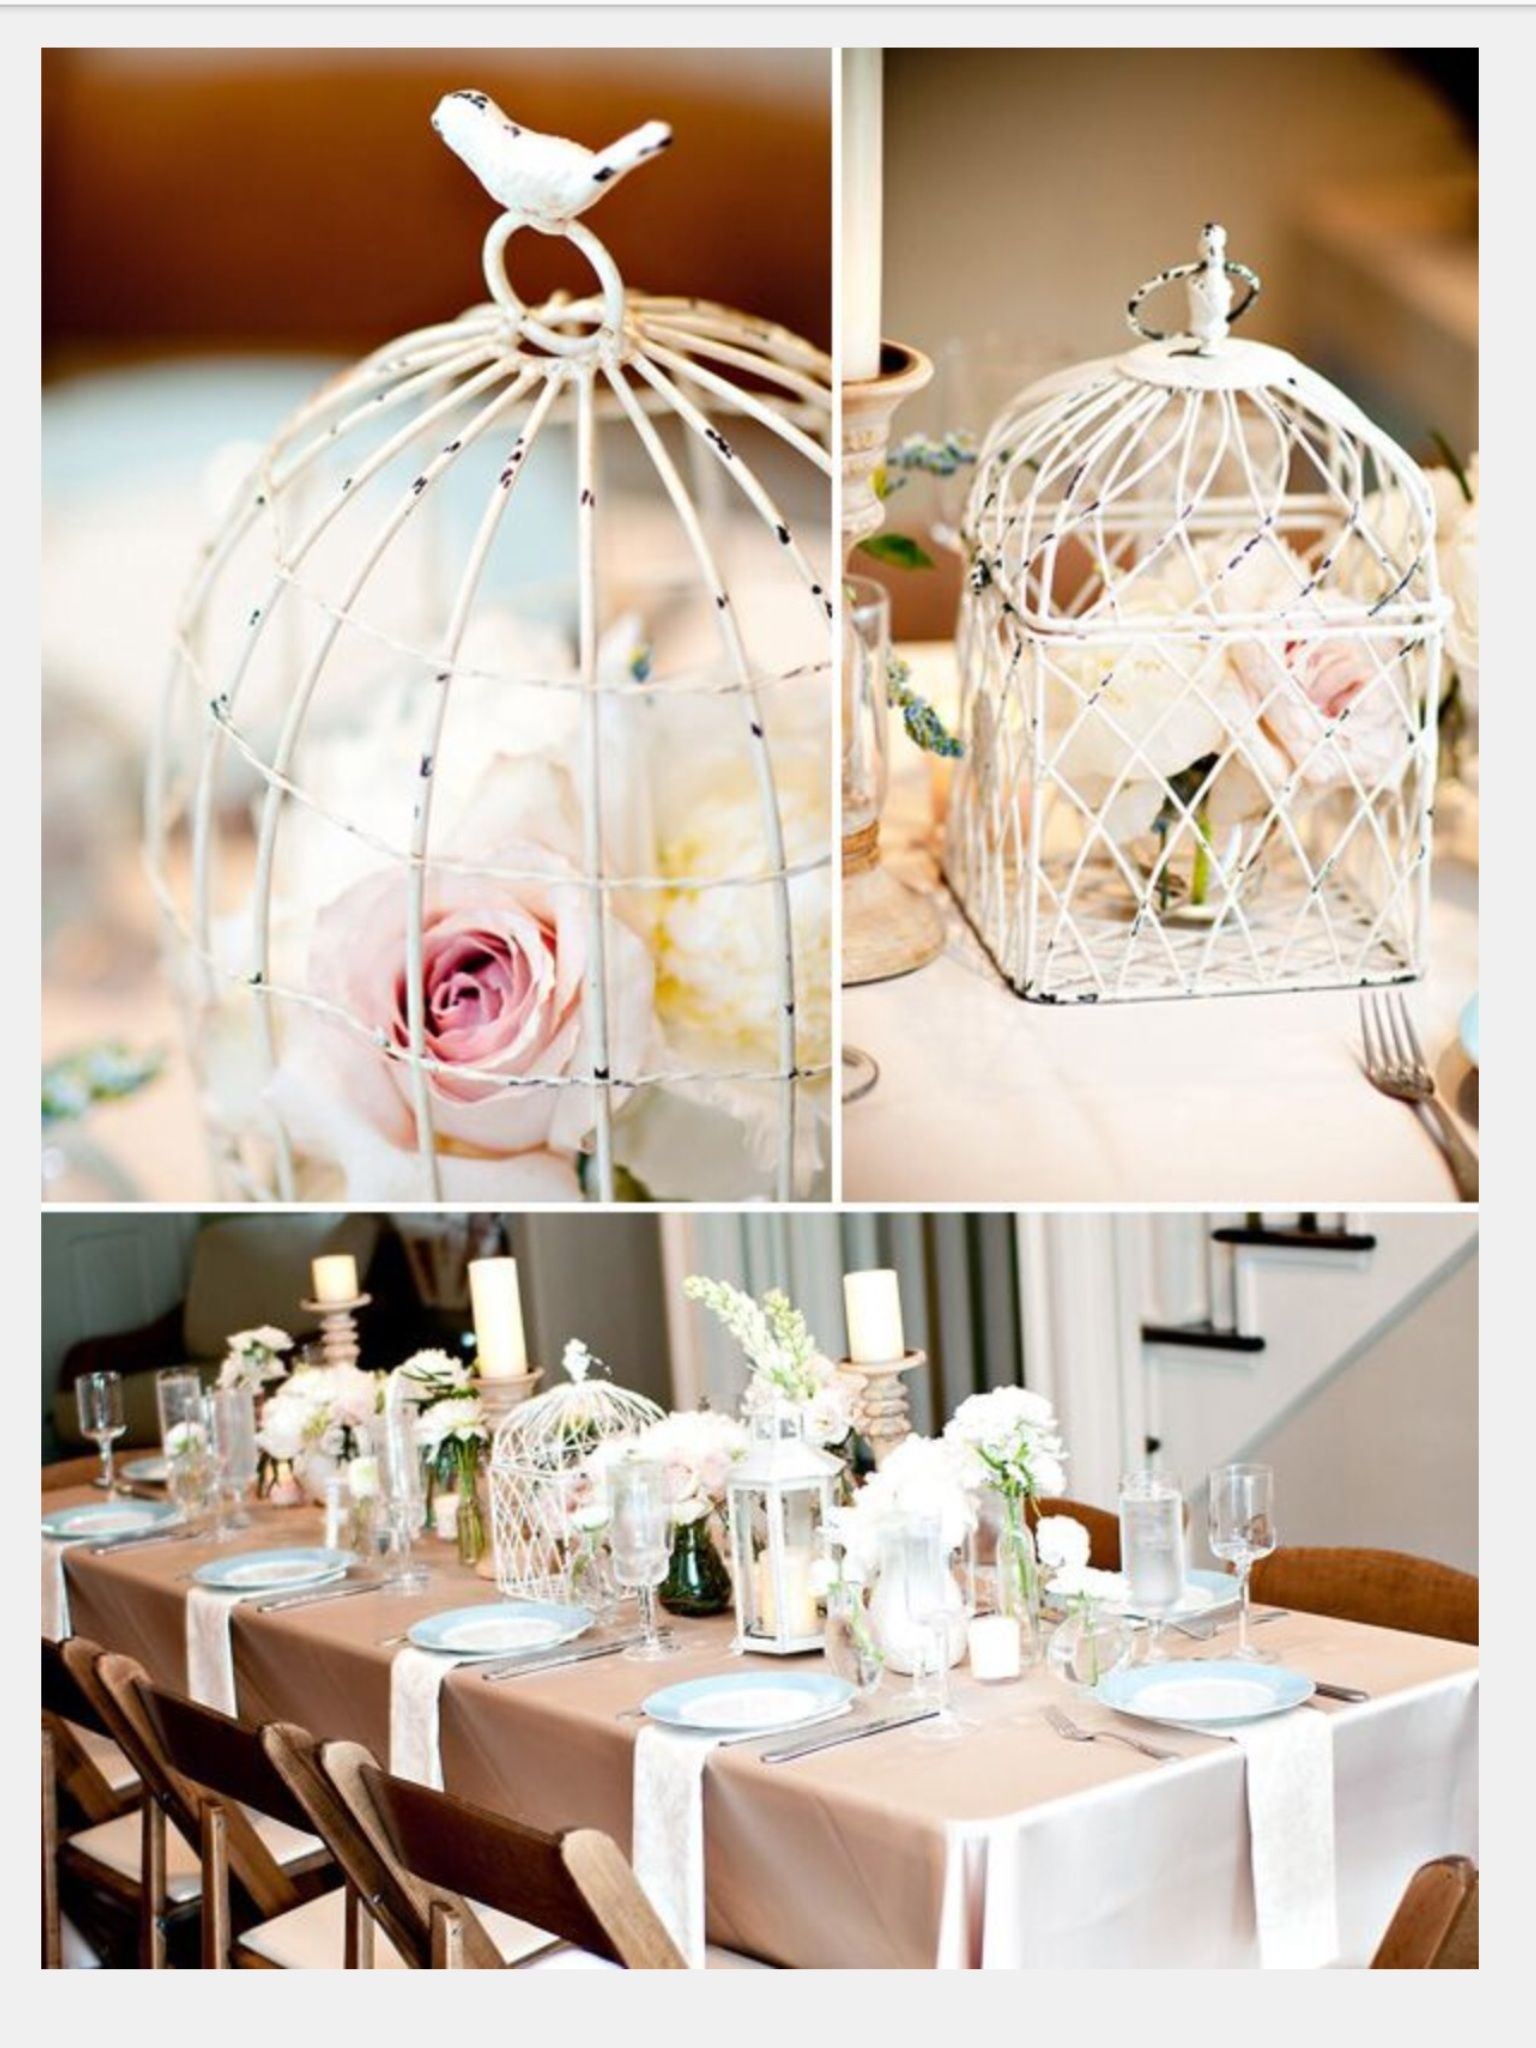 Birdcage | Party ideas! | Pinterest | Babyshower